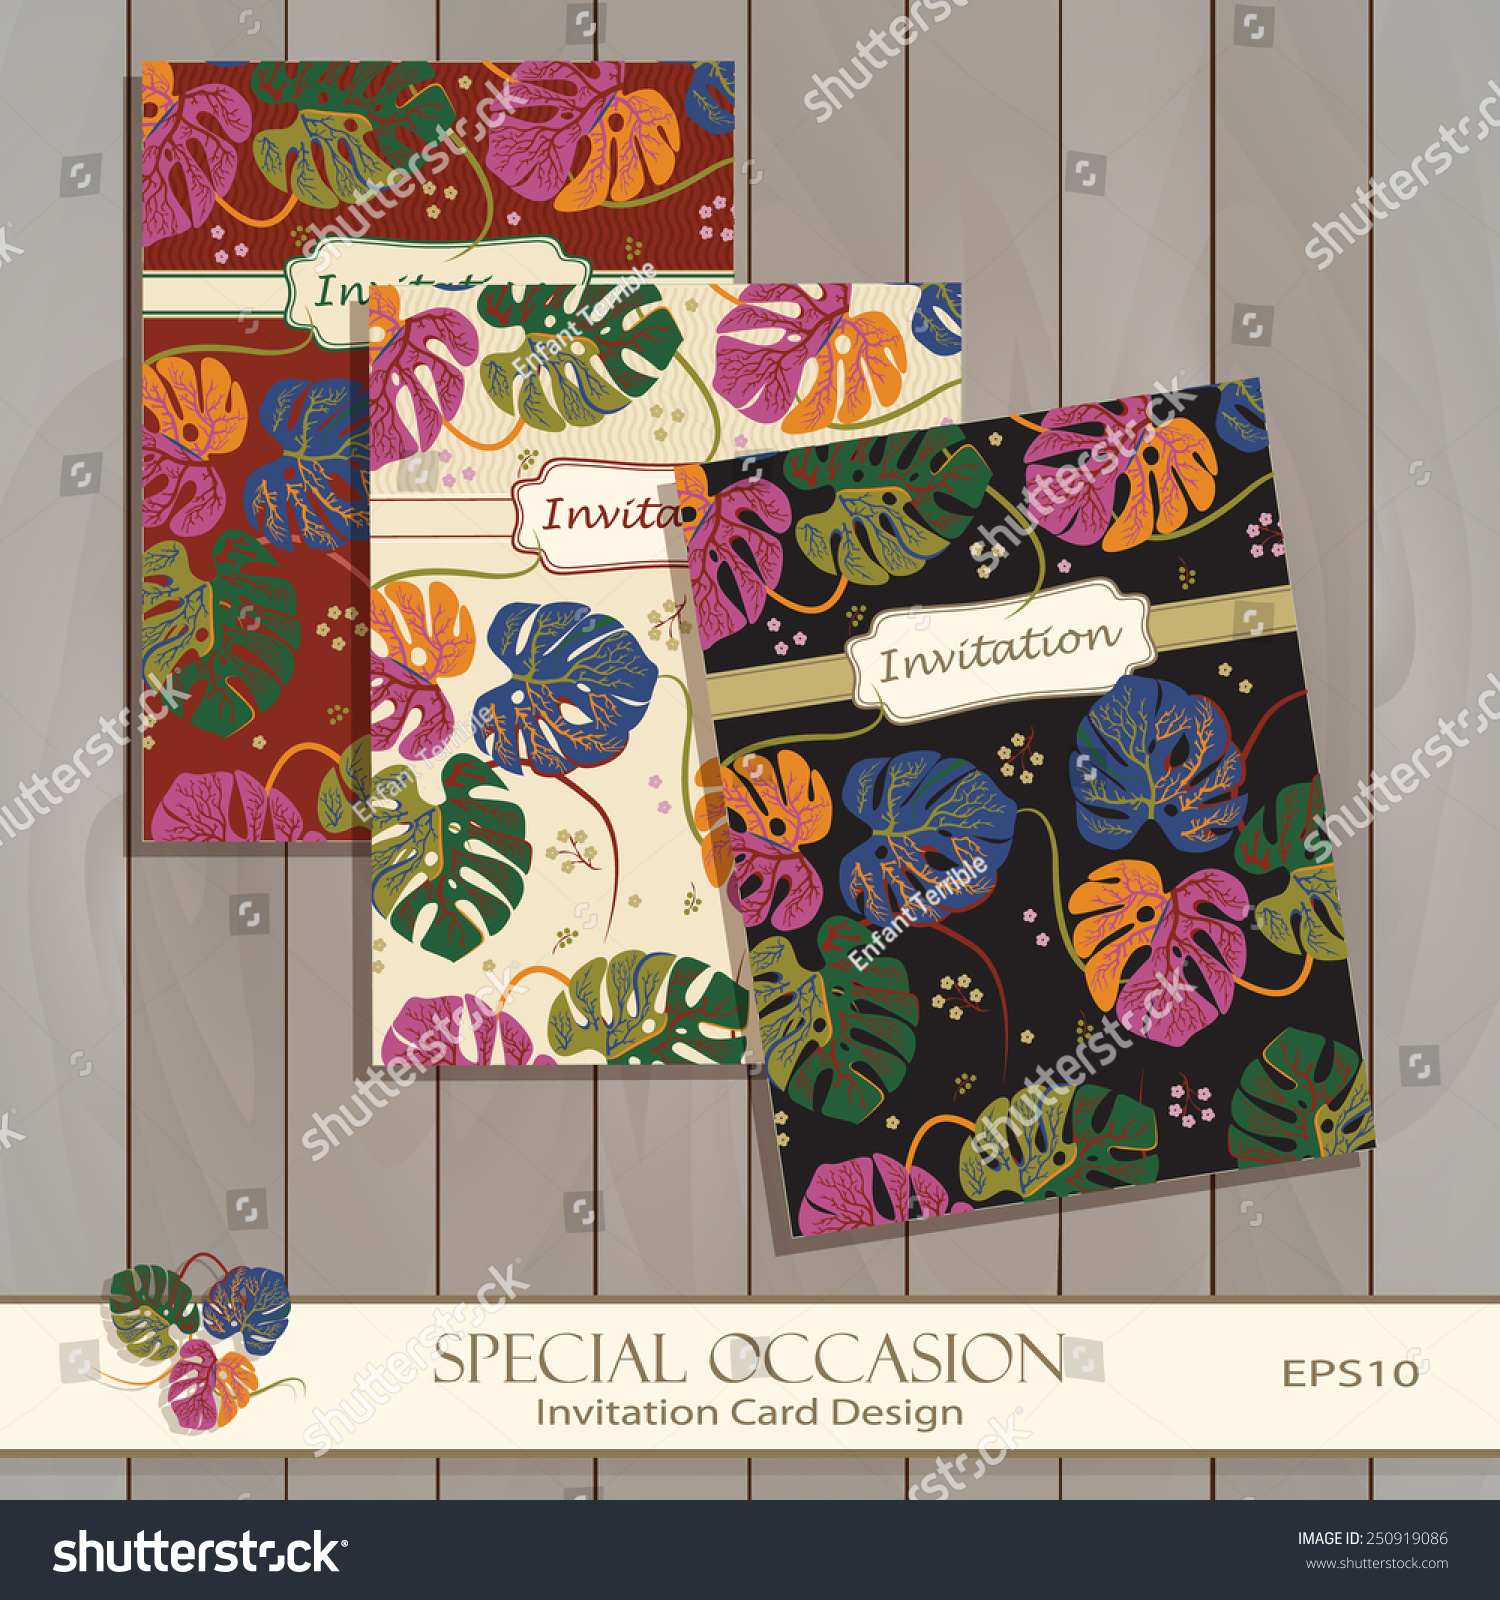 Invitation Card Design Template Greeting Floral Stock Vector